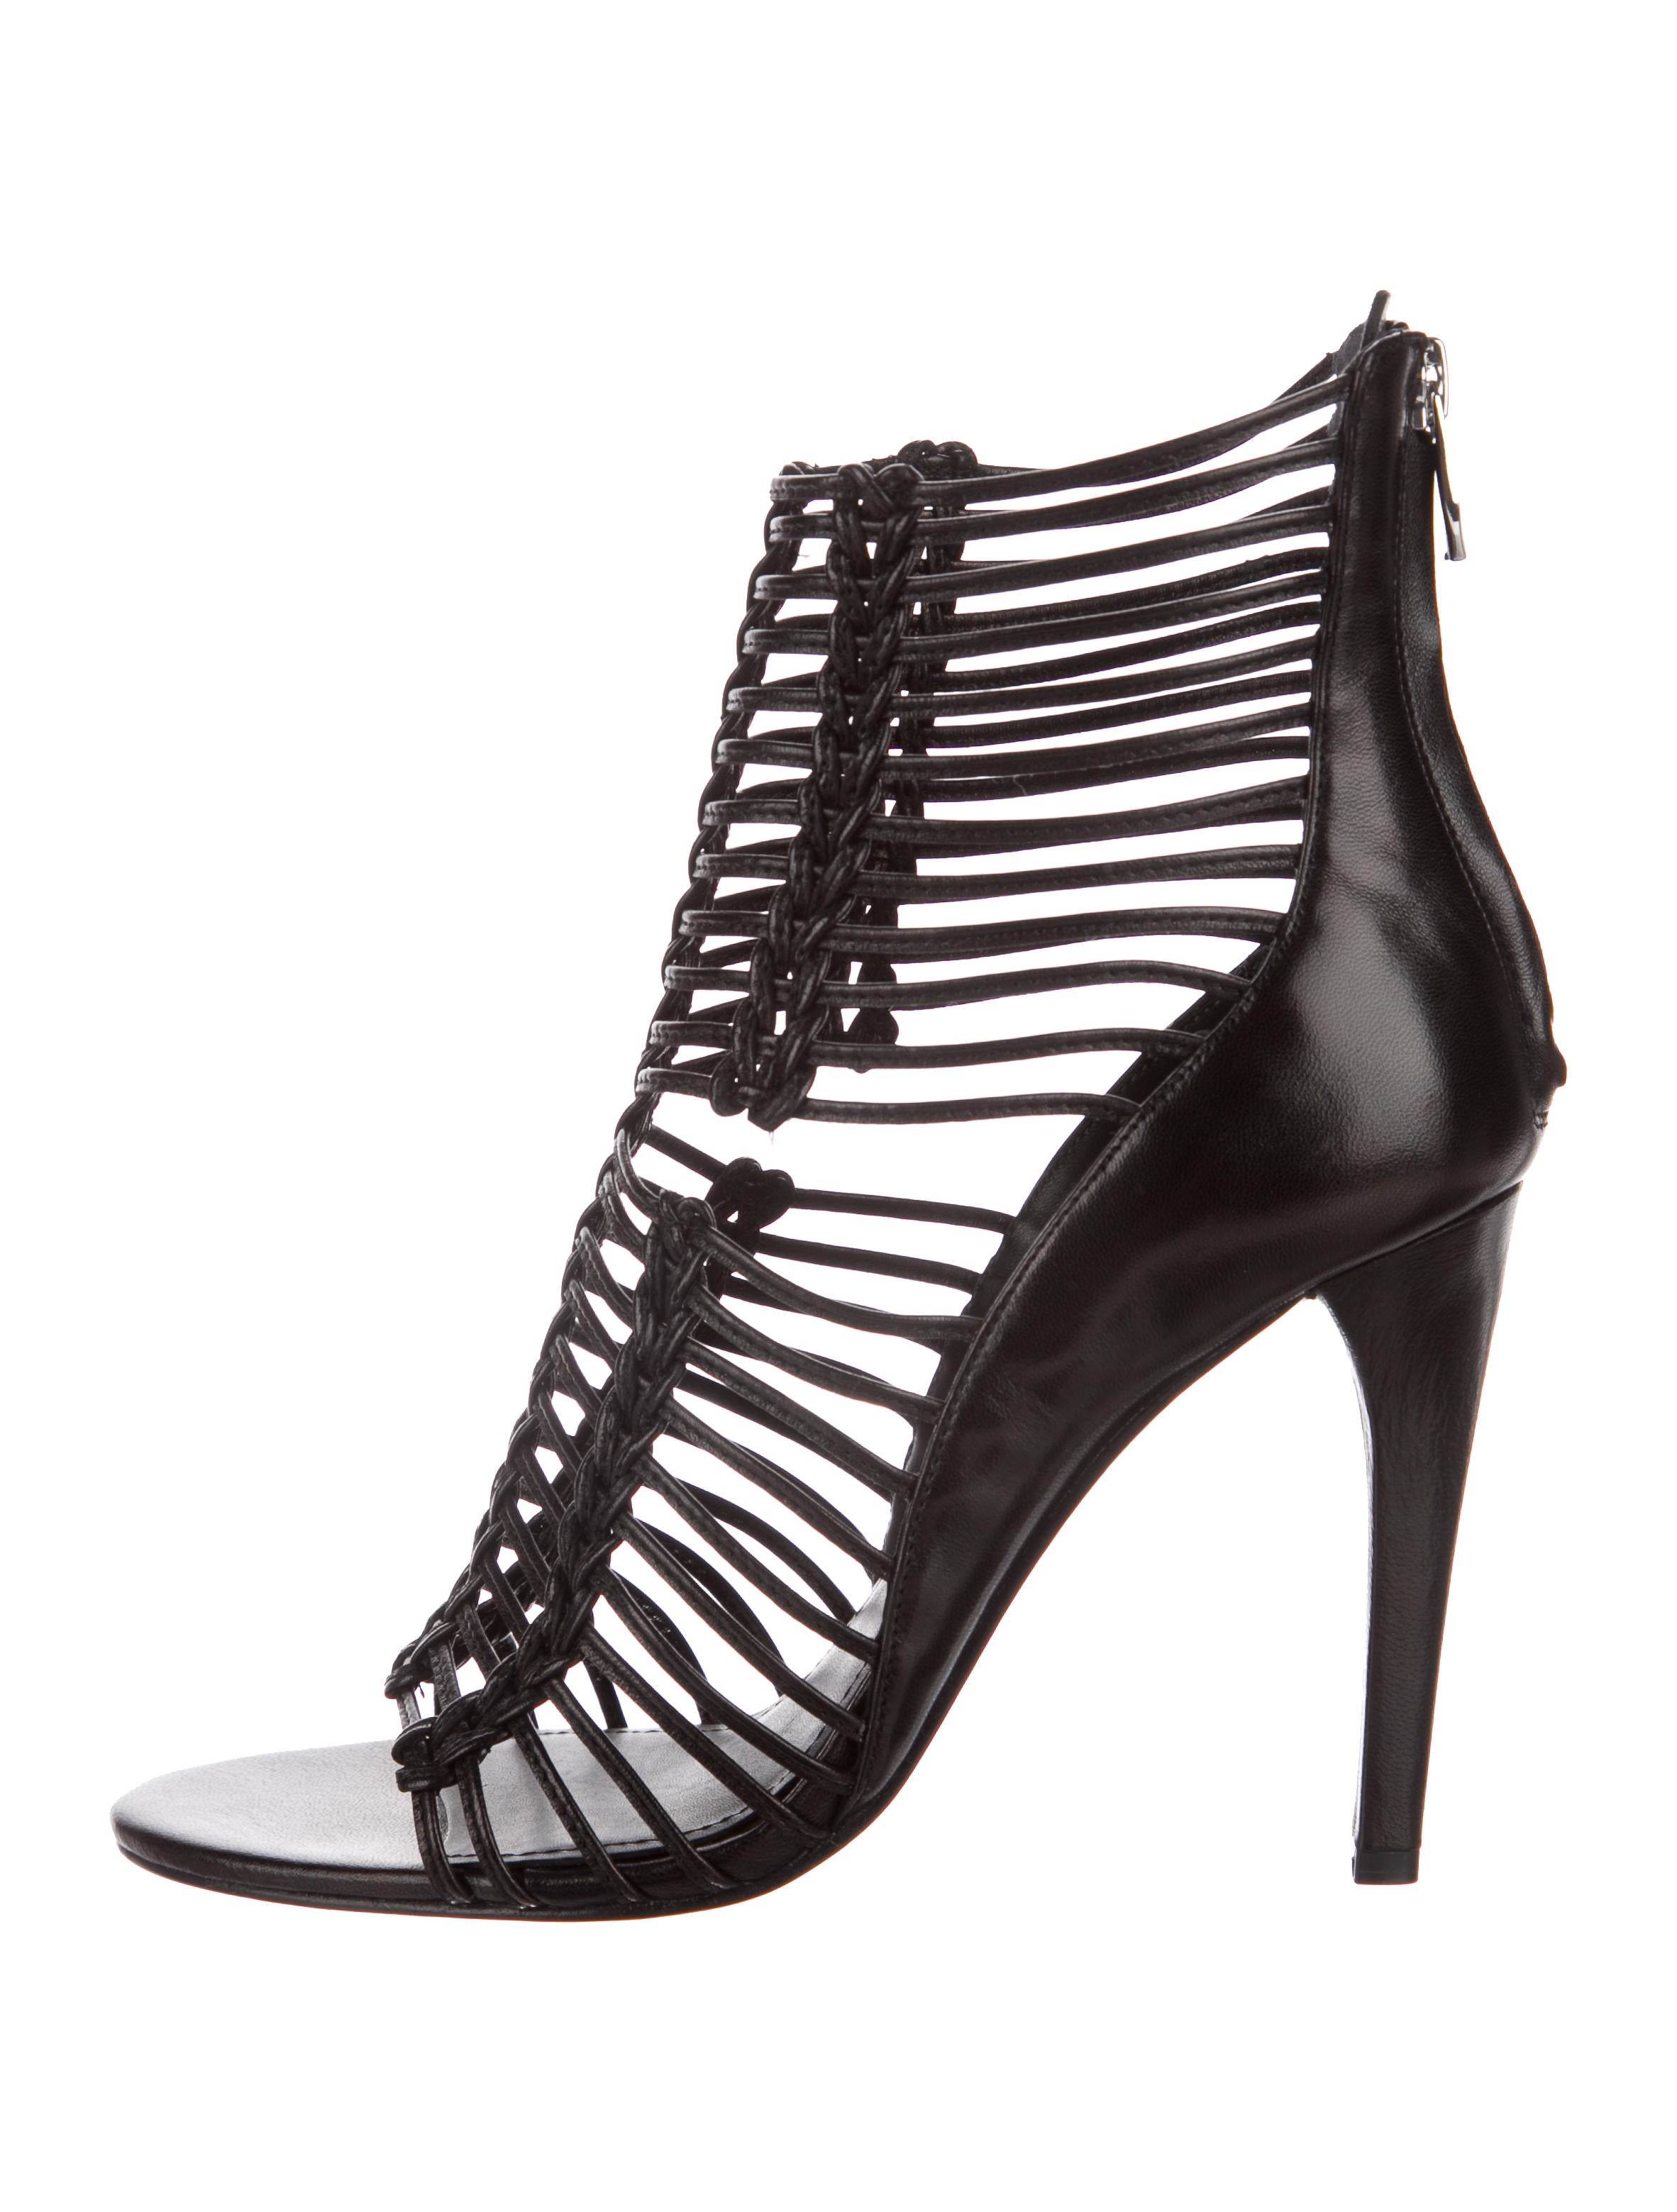 Sigerson Morrison Leather Cage Sandals w/ Tags release dates cheap price sale best wholesale buy cheap official site recommend for sale buy cheap newest SEwcPcdS